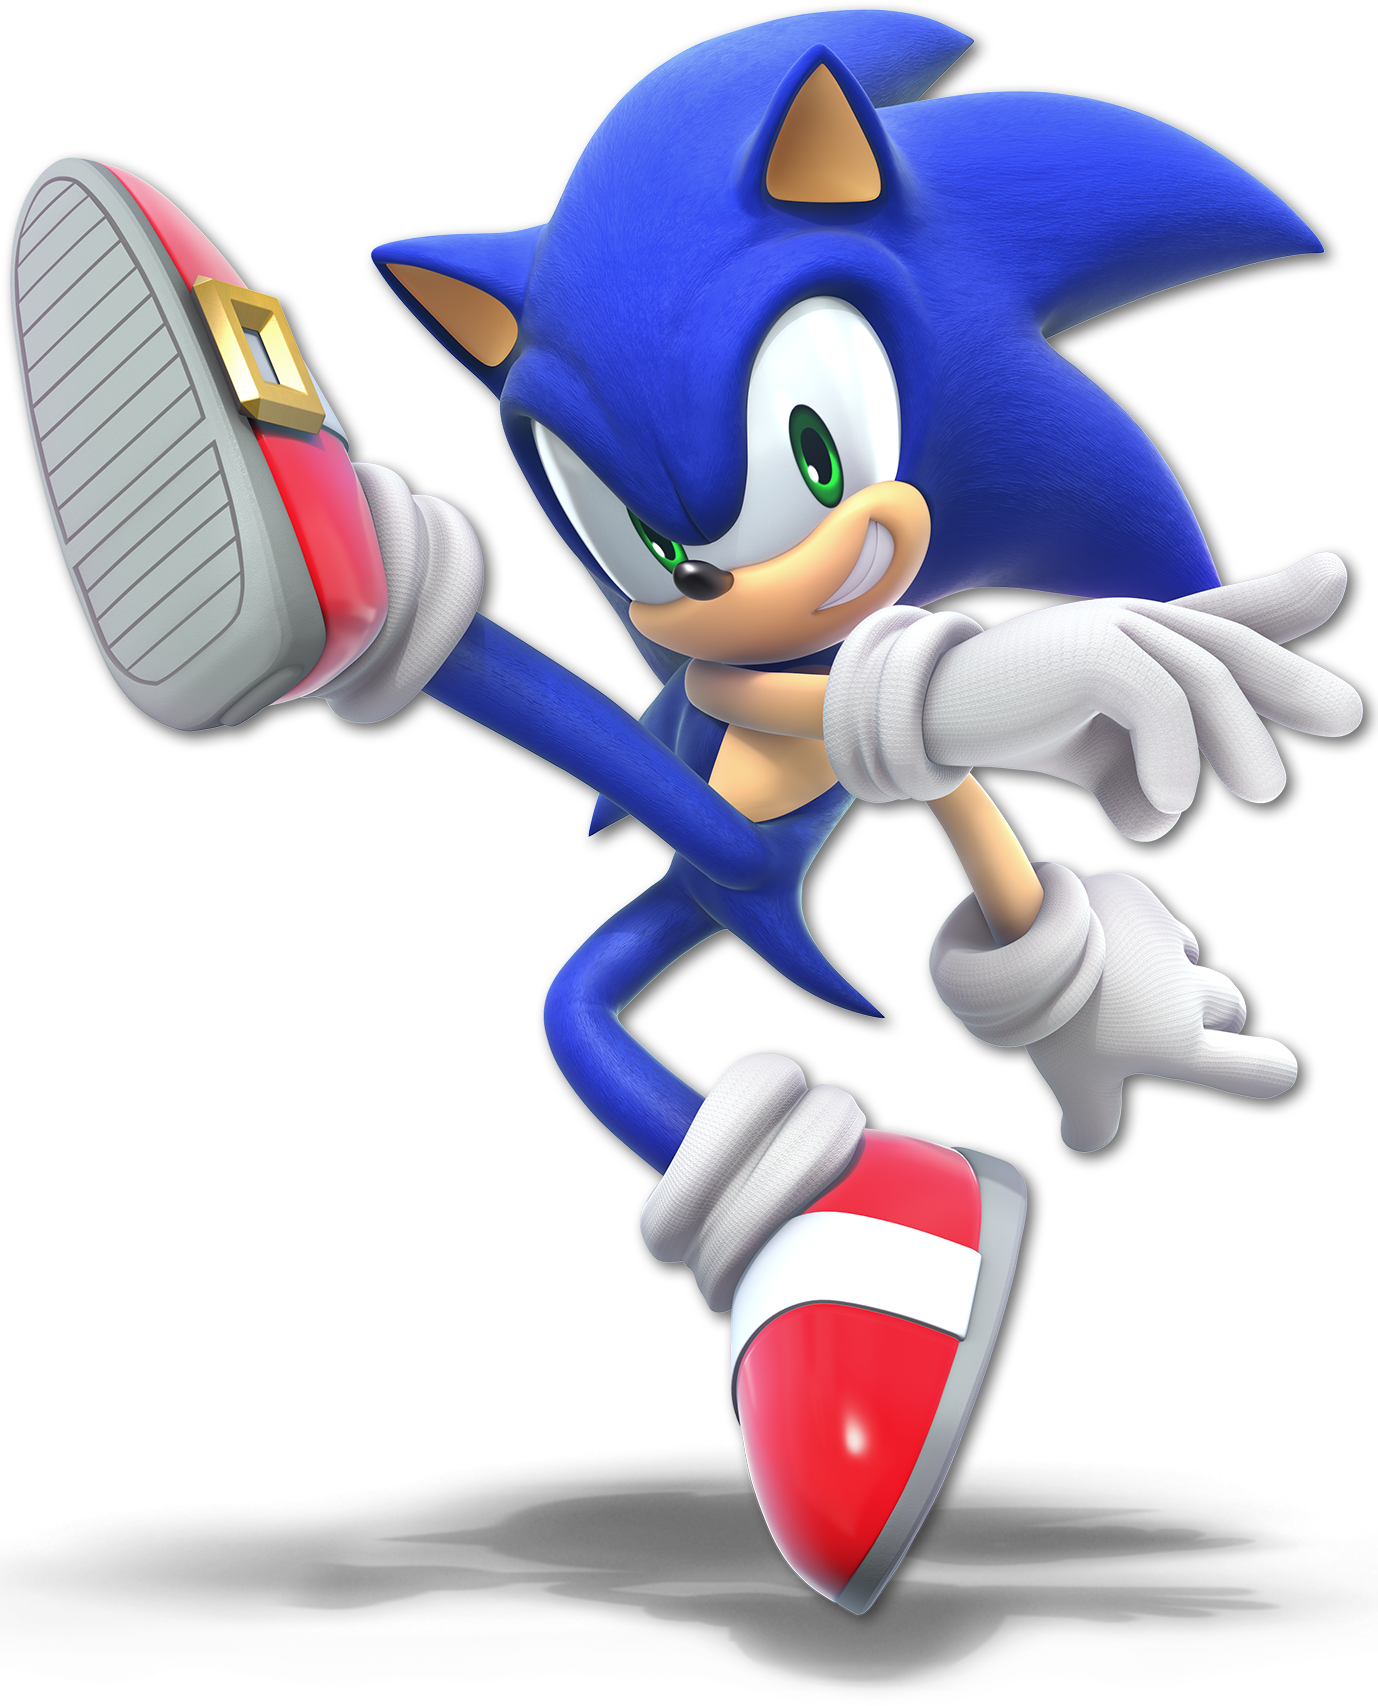 This is a picture of Playful Sonic the Hedghog Images